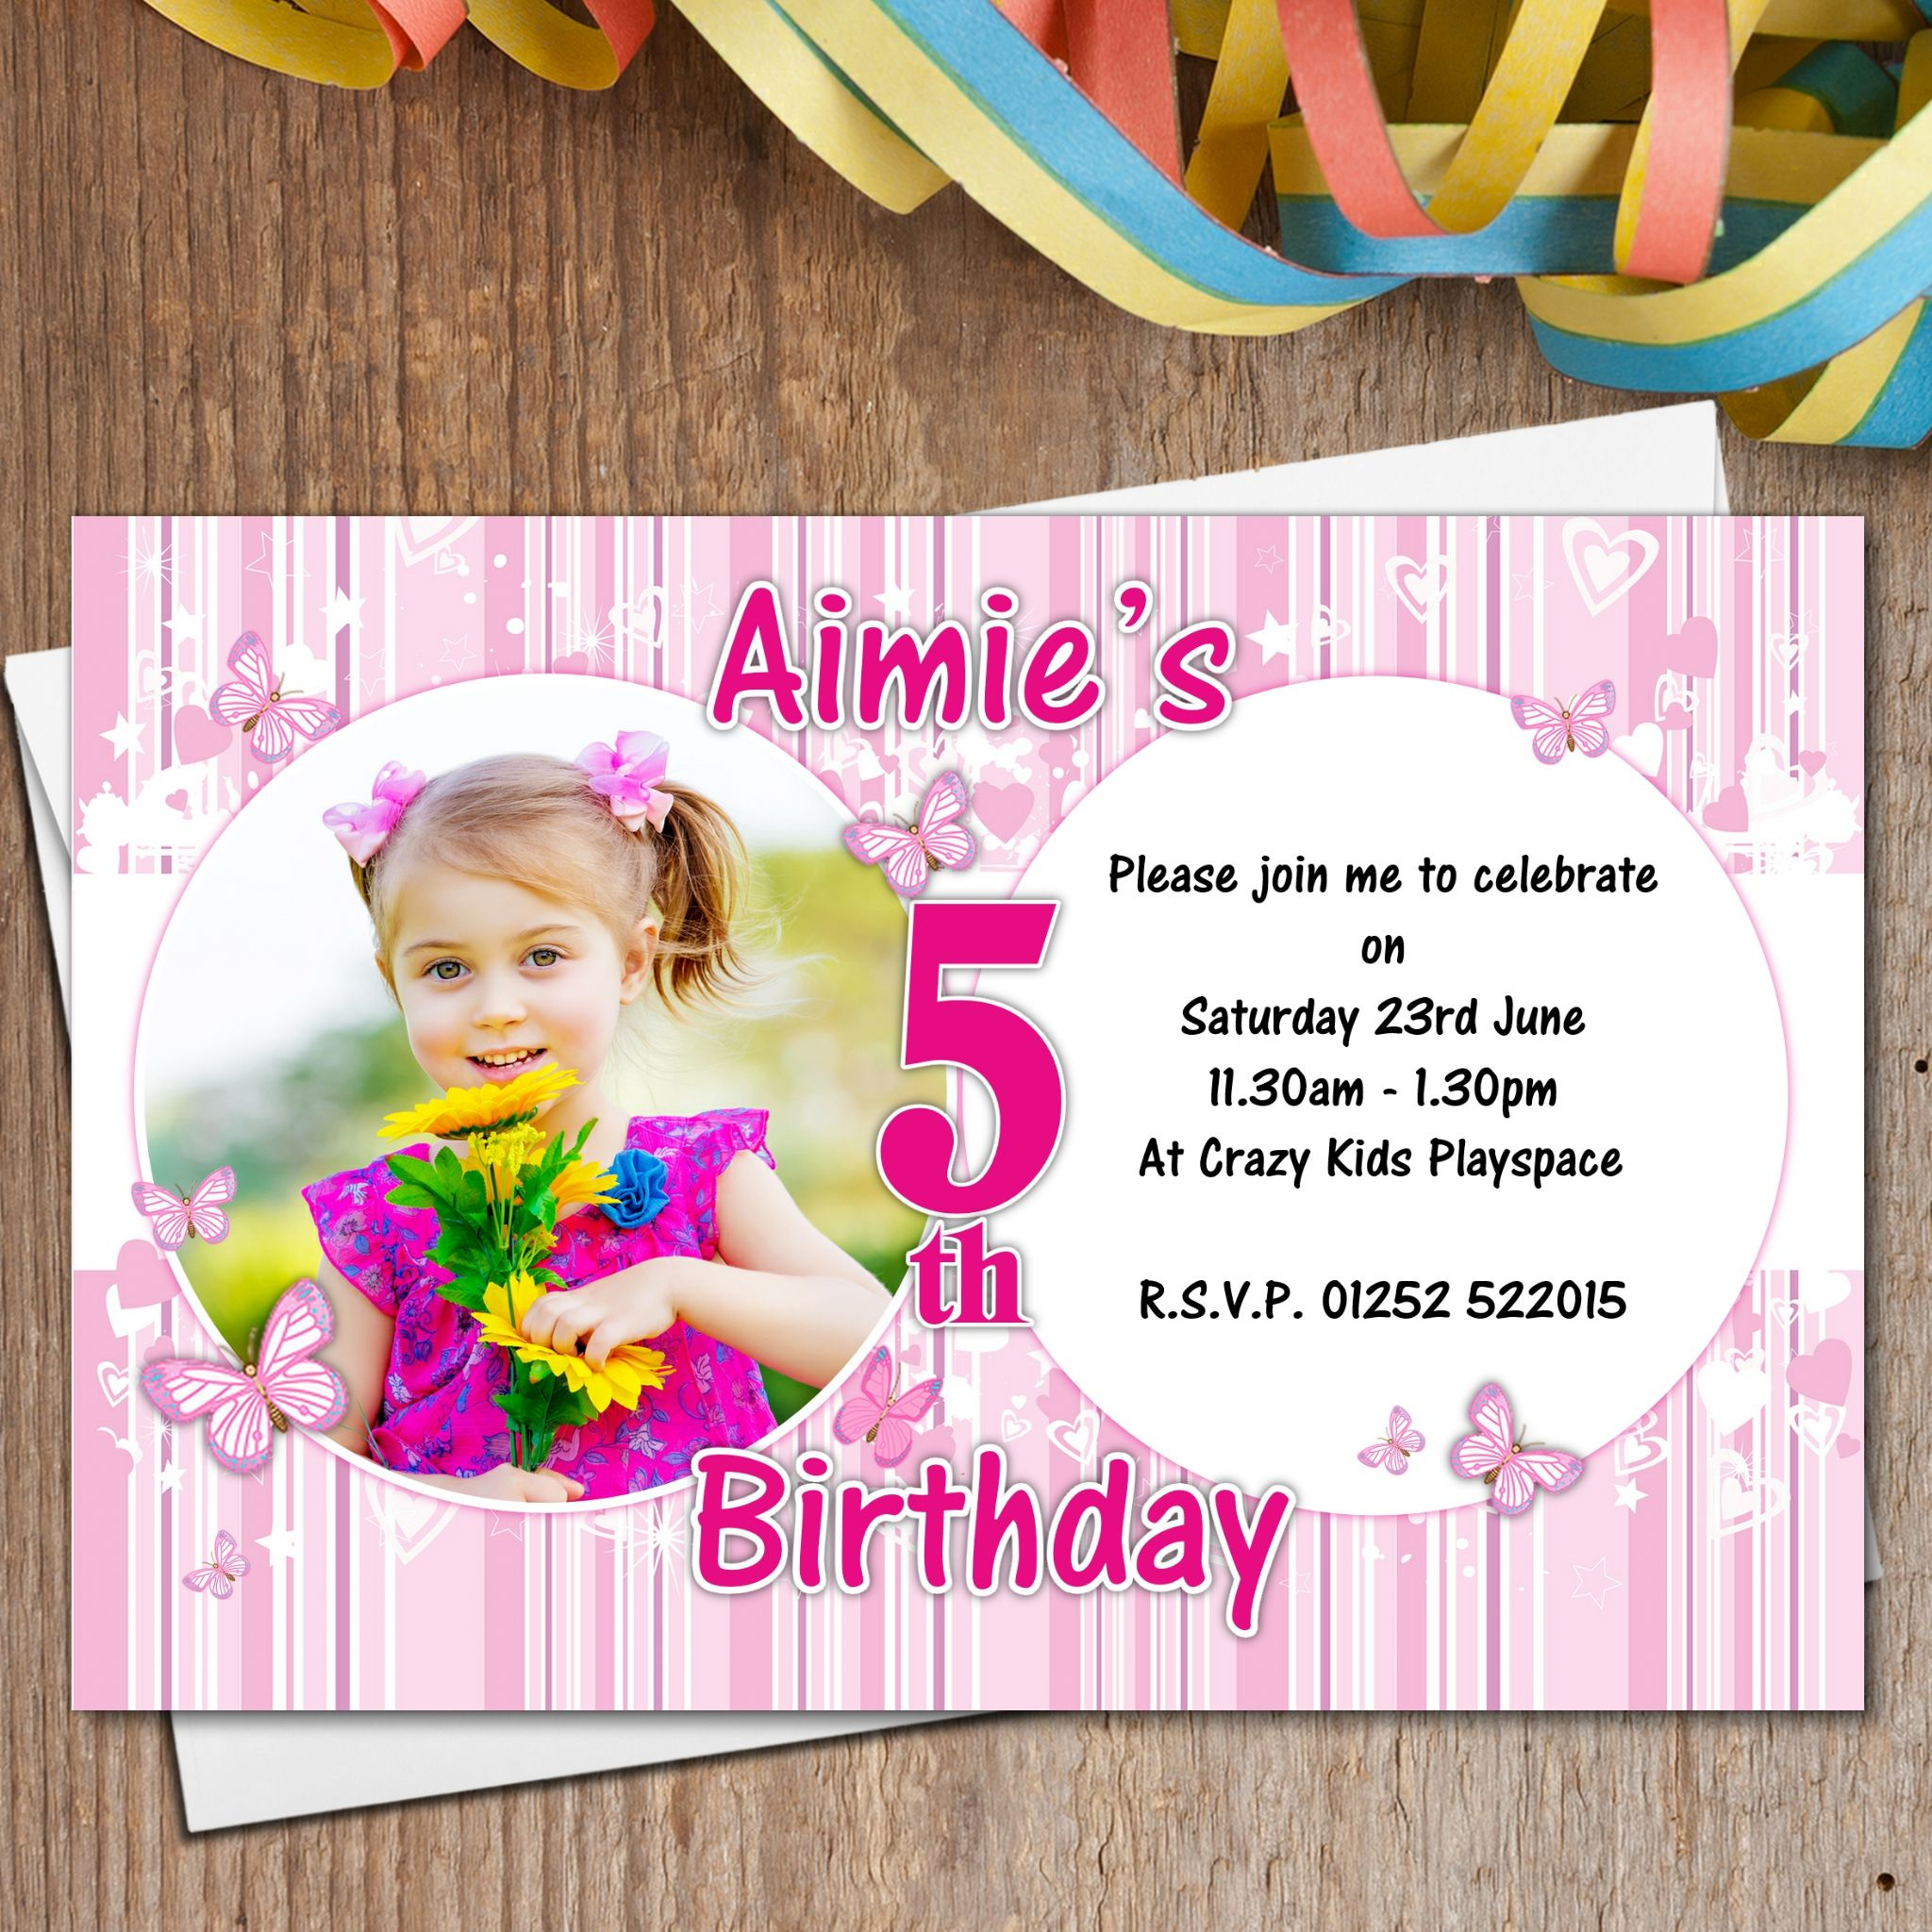 10 Personalised Pink Butterfly Birthday Party Photo Invitations N168